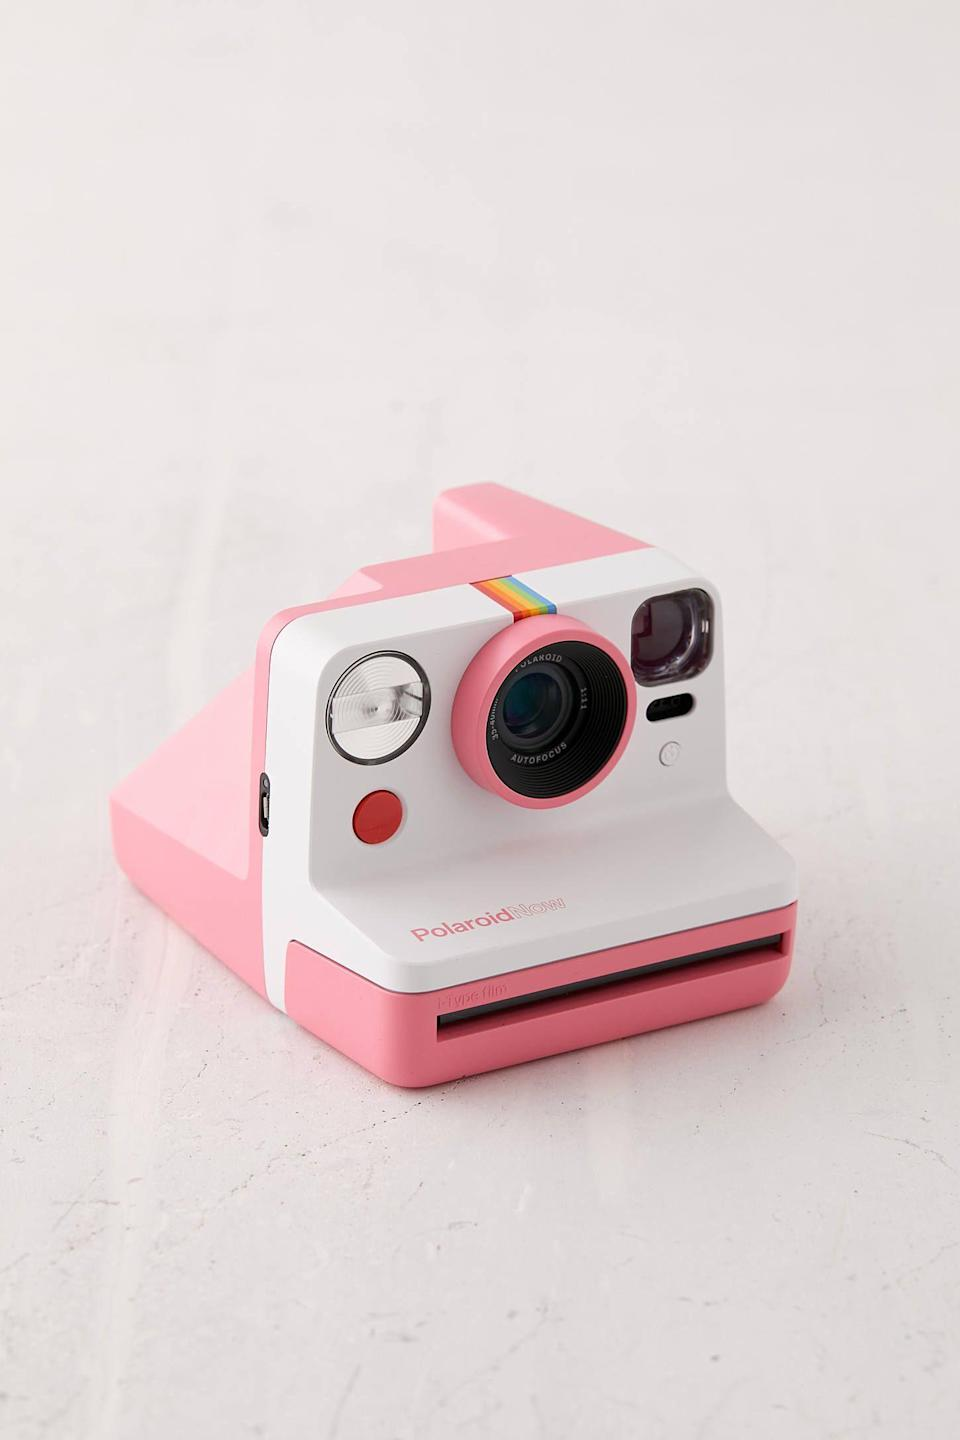 "<p><strong>Polaroid</strong></p><p>urbanoutfitters.com</p><p><strong>$100.00</strong></p><p><a href=""https://go.redirectingat.com?id=74968X1596630&url=https%3A%2F%2Fwww.urbanoutfitters.com%2Fshop%2Fpolaroid-now-instant-camera&sref=https%3A%2F%2Fwww.countryliving.com%2Fshopping%2Fg32094034%2Fgraduation-gifts-for-her%2F"" rel=""nofollow noopener"" target=""_blank"" data-ylk=""slk:Shop Now"" class=""link rapid-noclick-resp"">Shop Now</a></p><p>Your grad can hold onto college memories forever with this classic instant camera. It immediately prints out pictures that she can share with friends or pin up on a bulletin board.</p>"